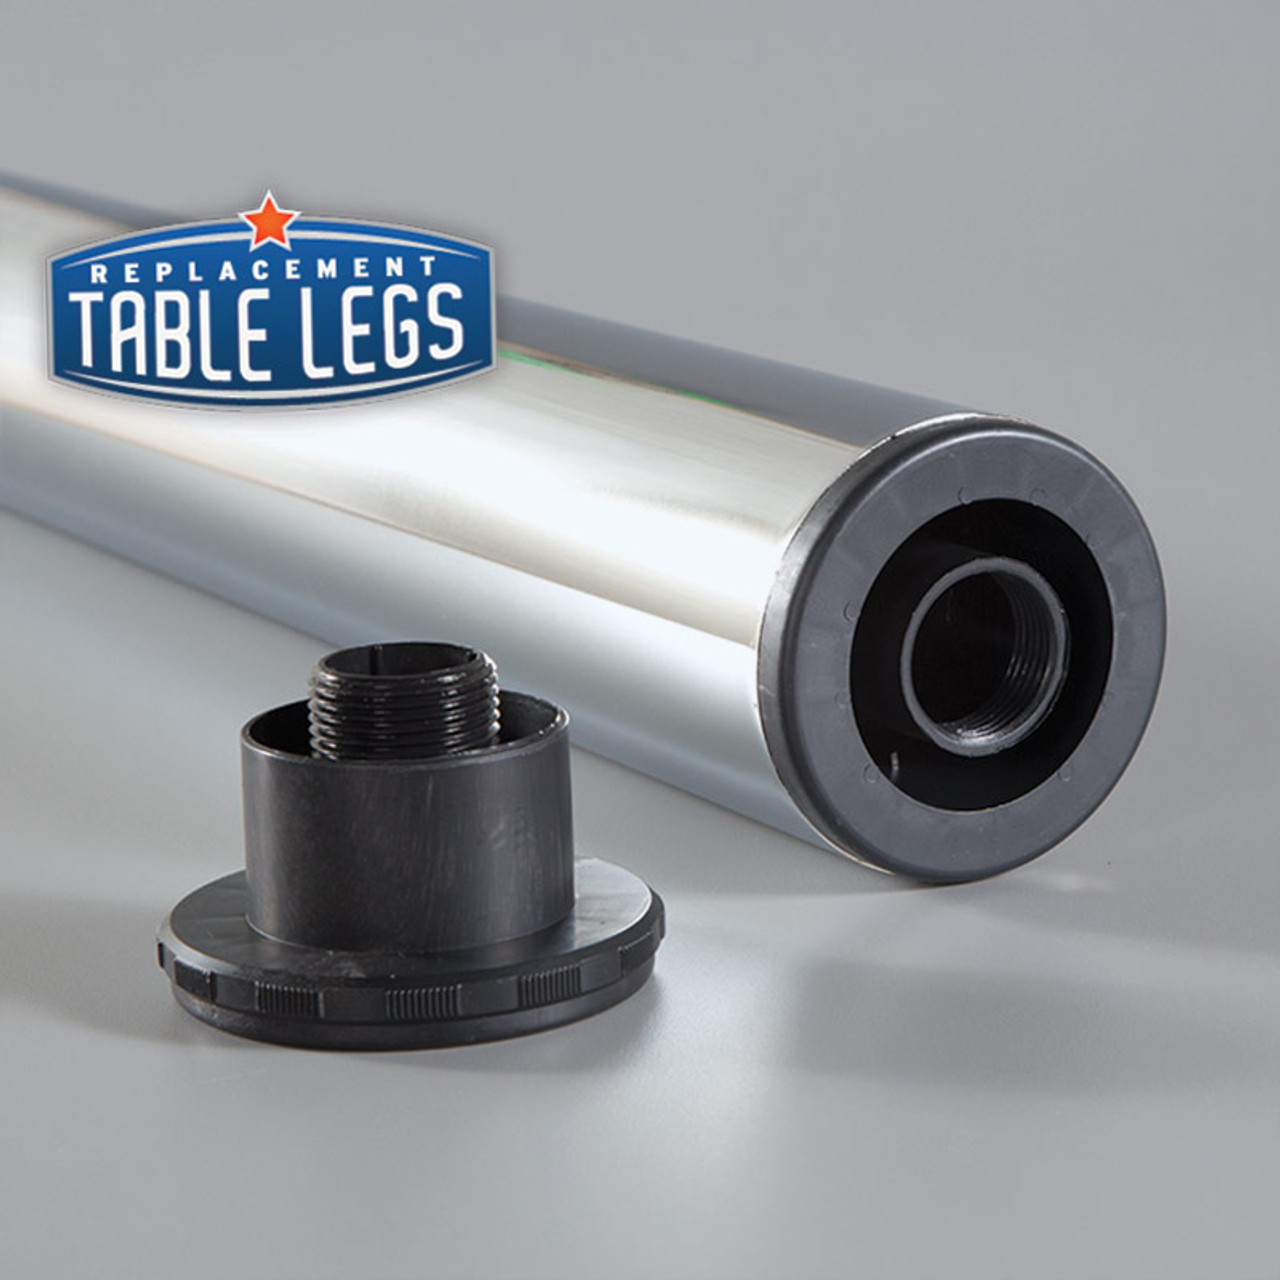 "1-1/8""adjustable ABS plastic foot detached - replacementtablelegs.com"